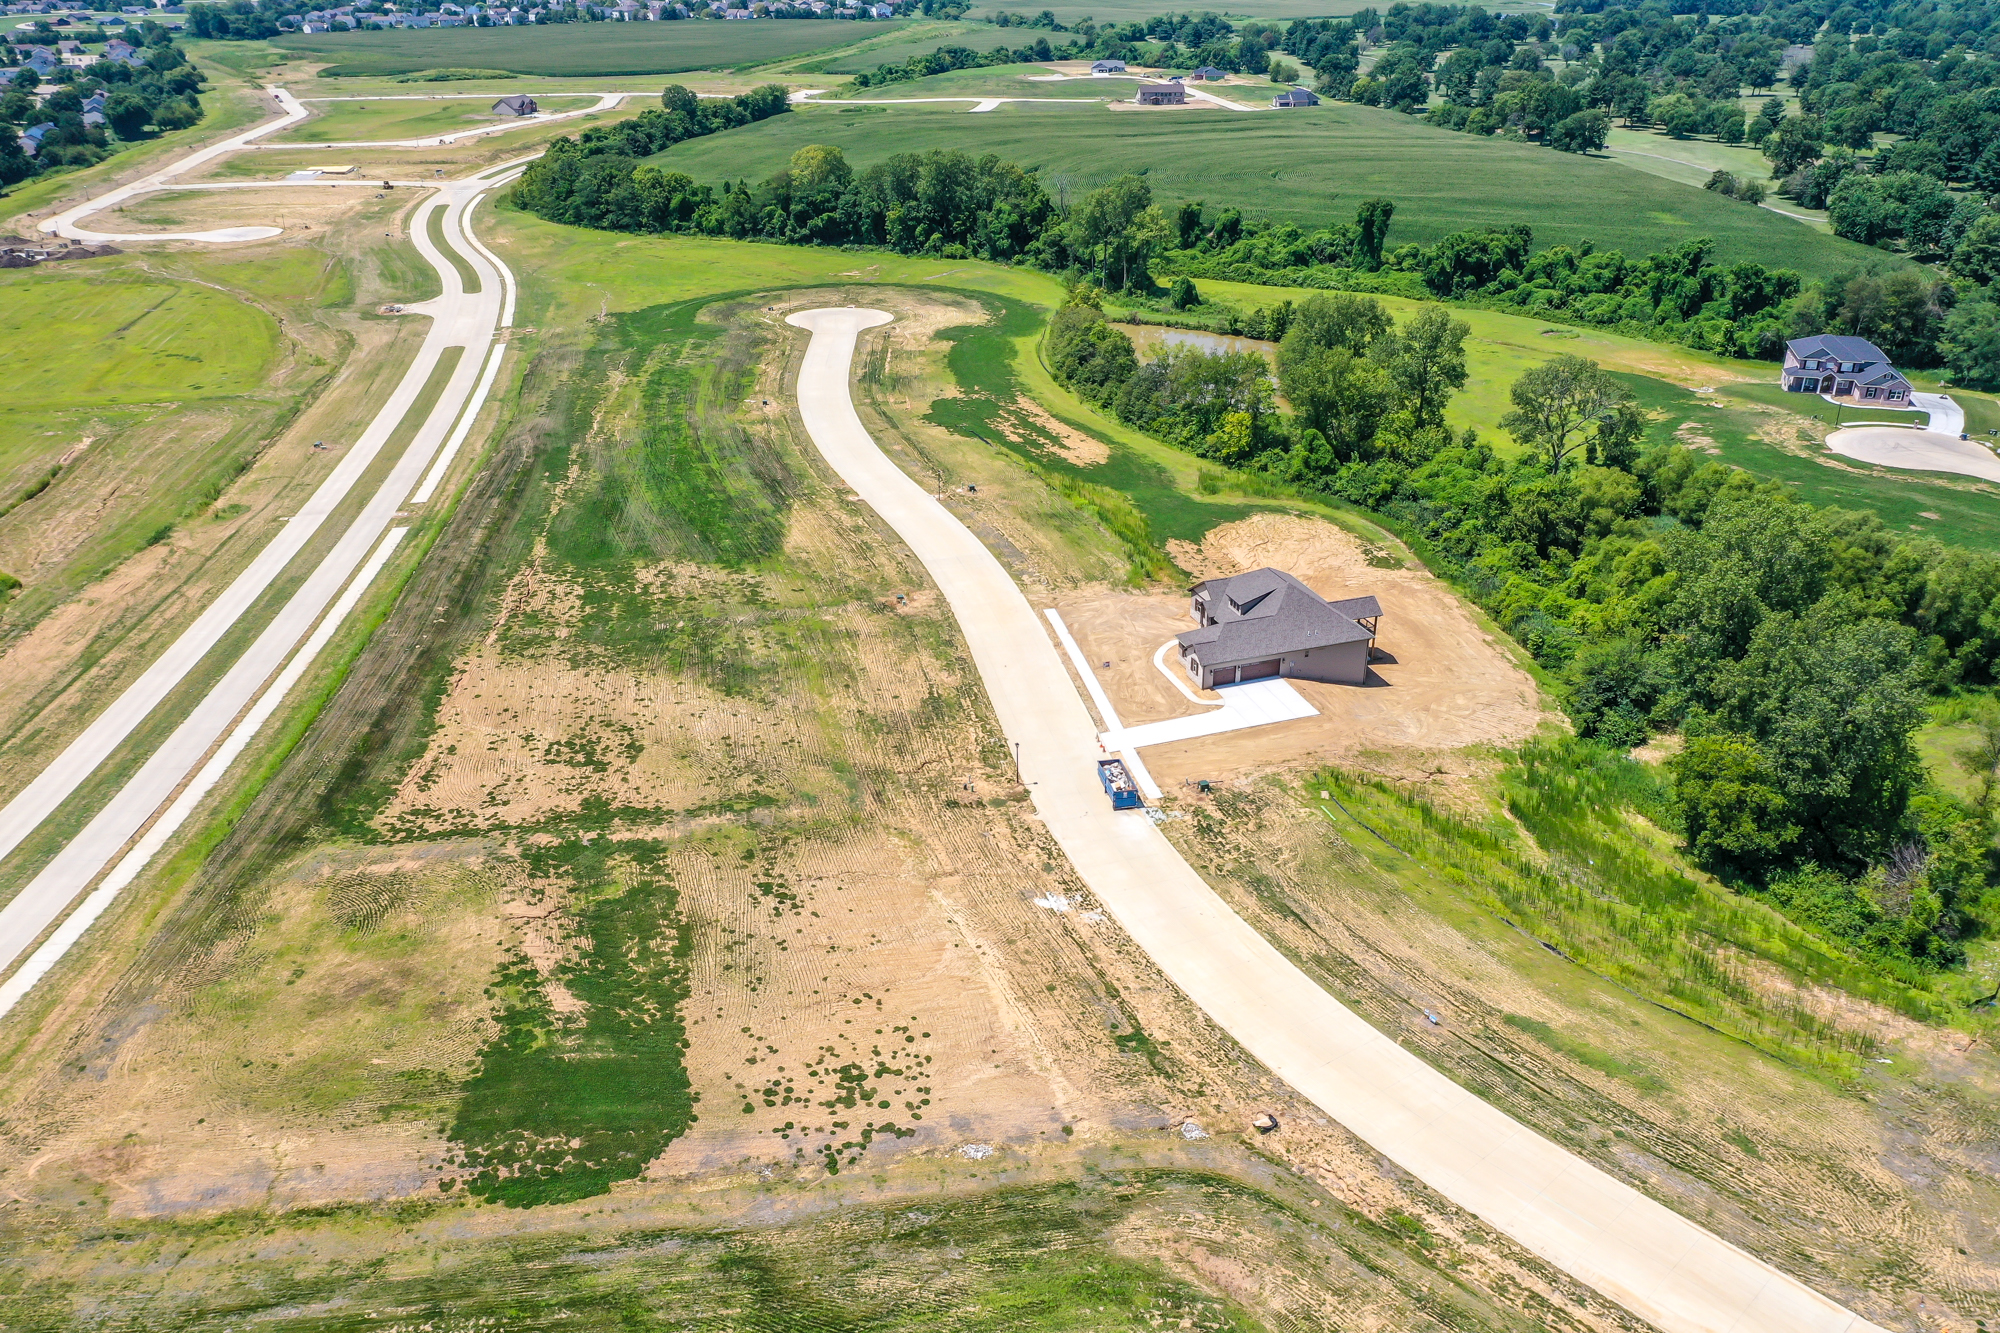 New_Construction_Homes_For_Sale_Shiloh_Illinois_Near_Scott_AFB-12.jpg